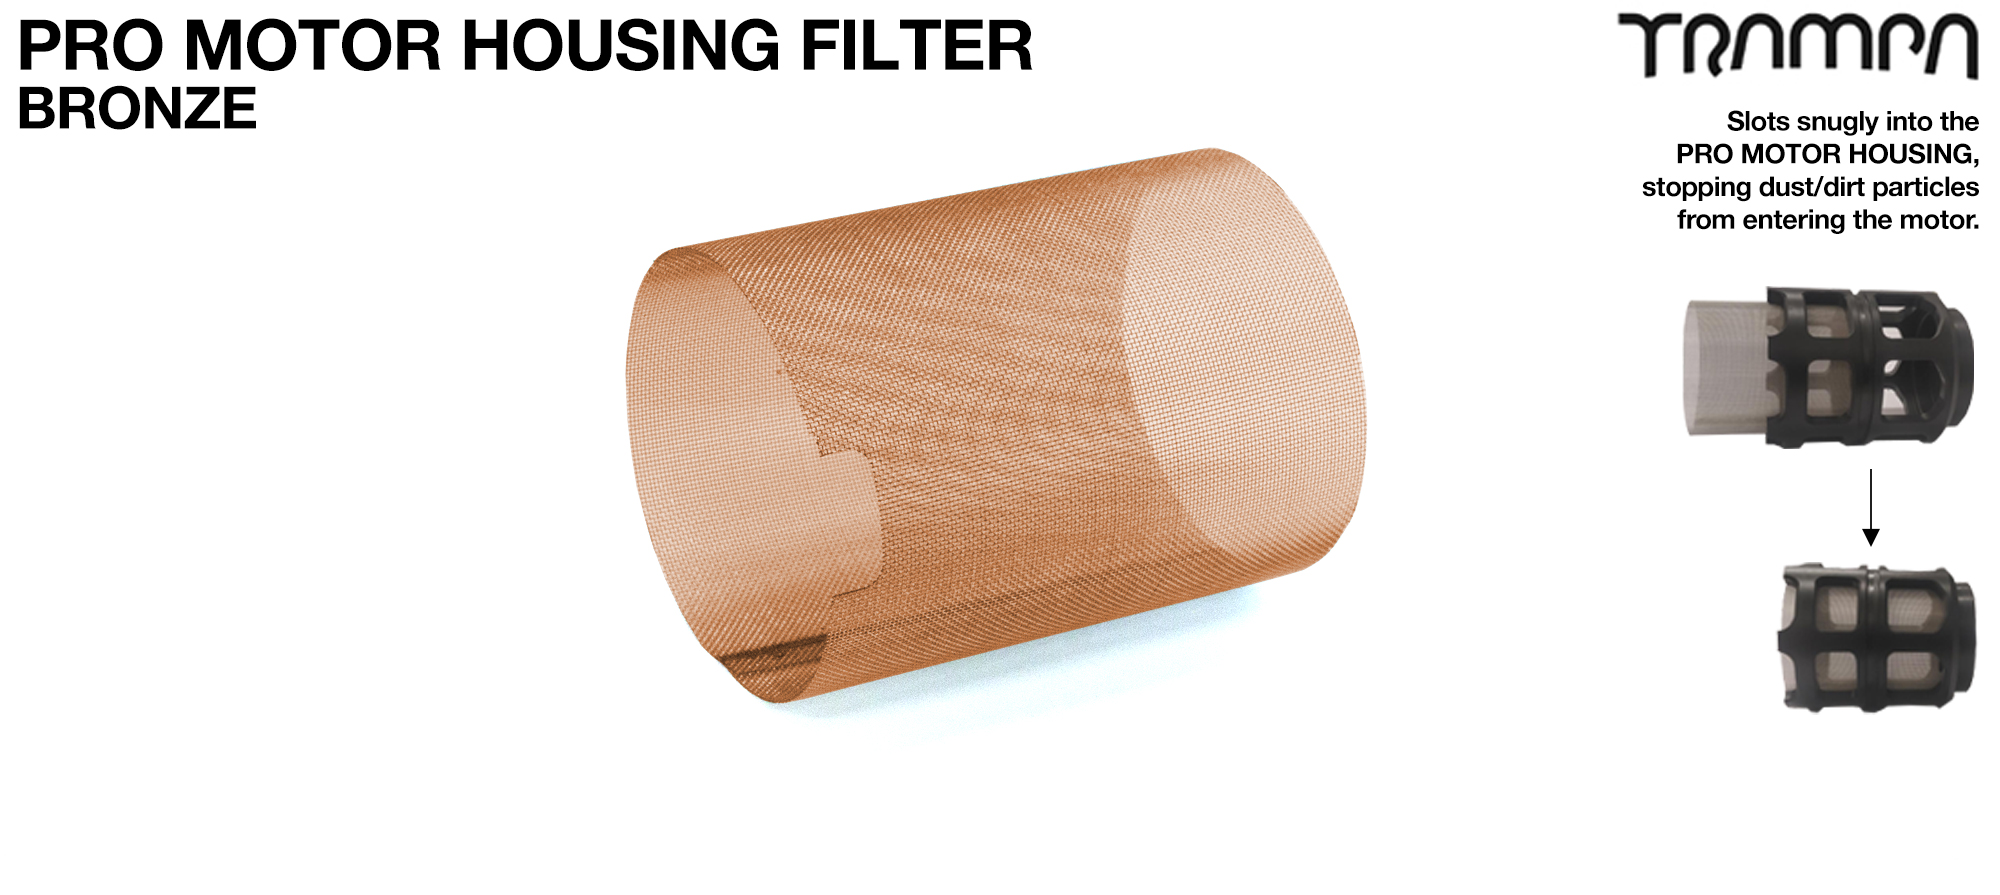 MkII Motor Protection Cover MESH FILTER - BRONZE